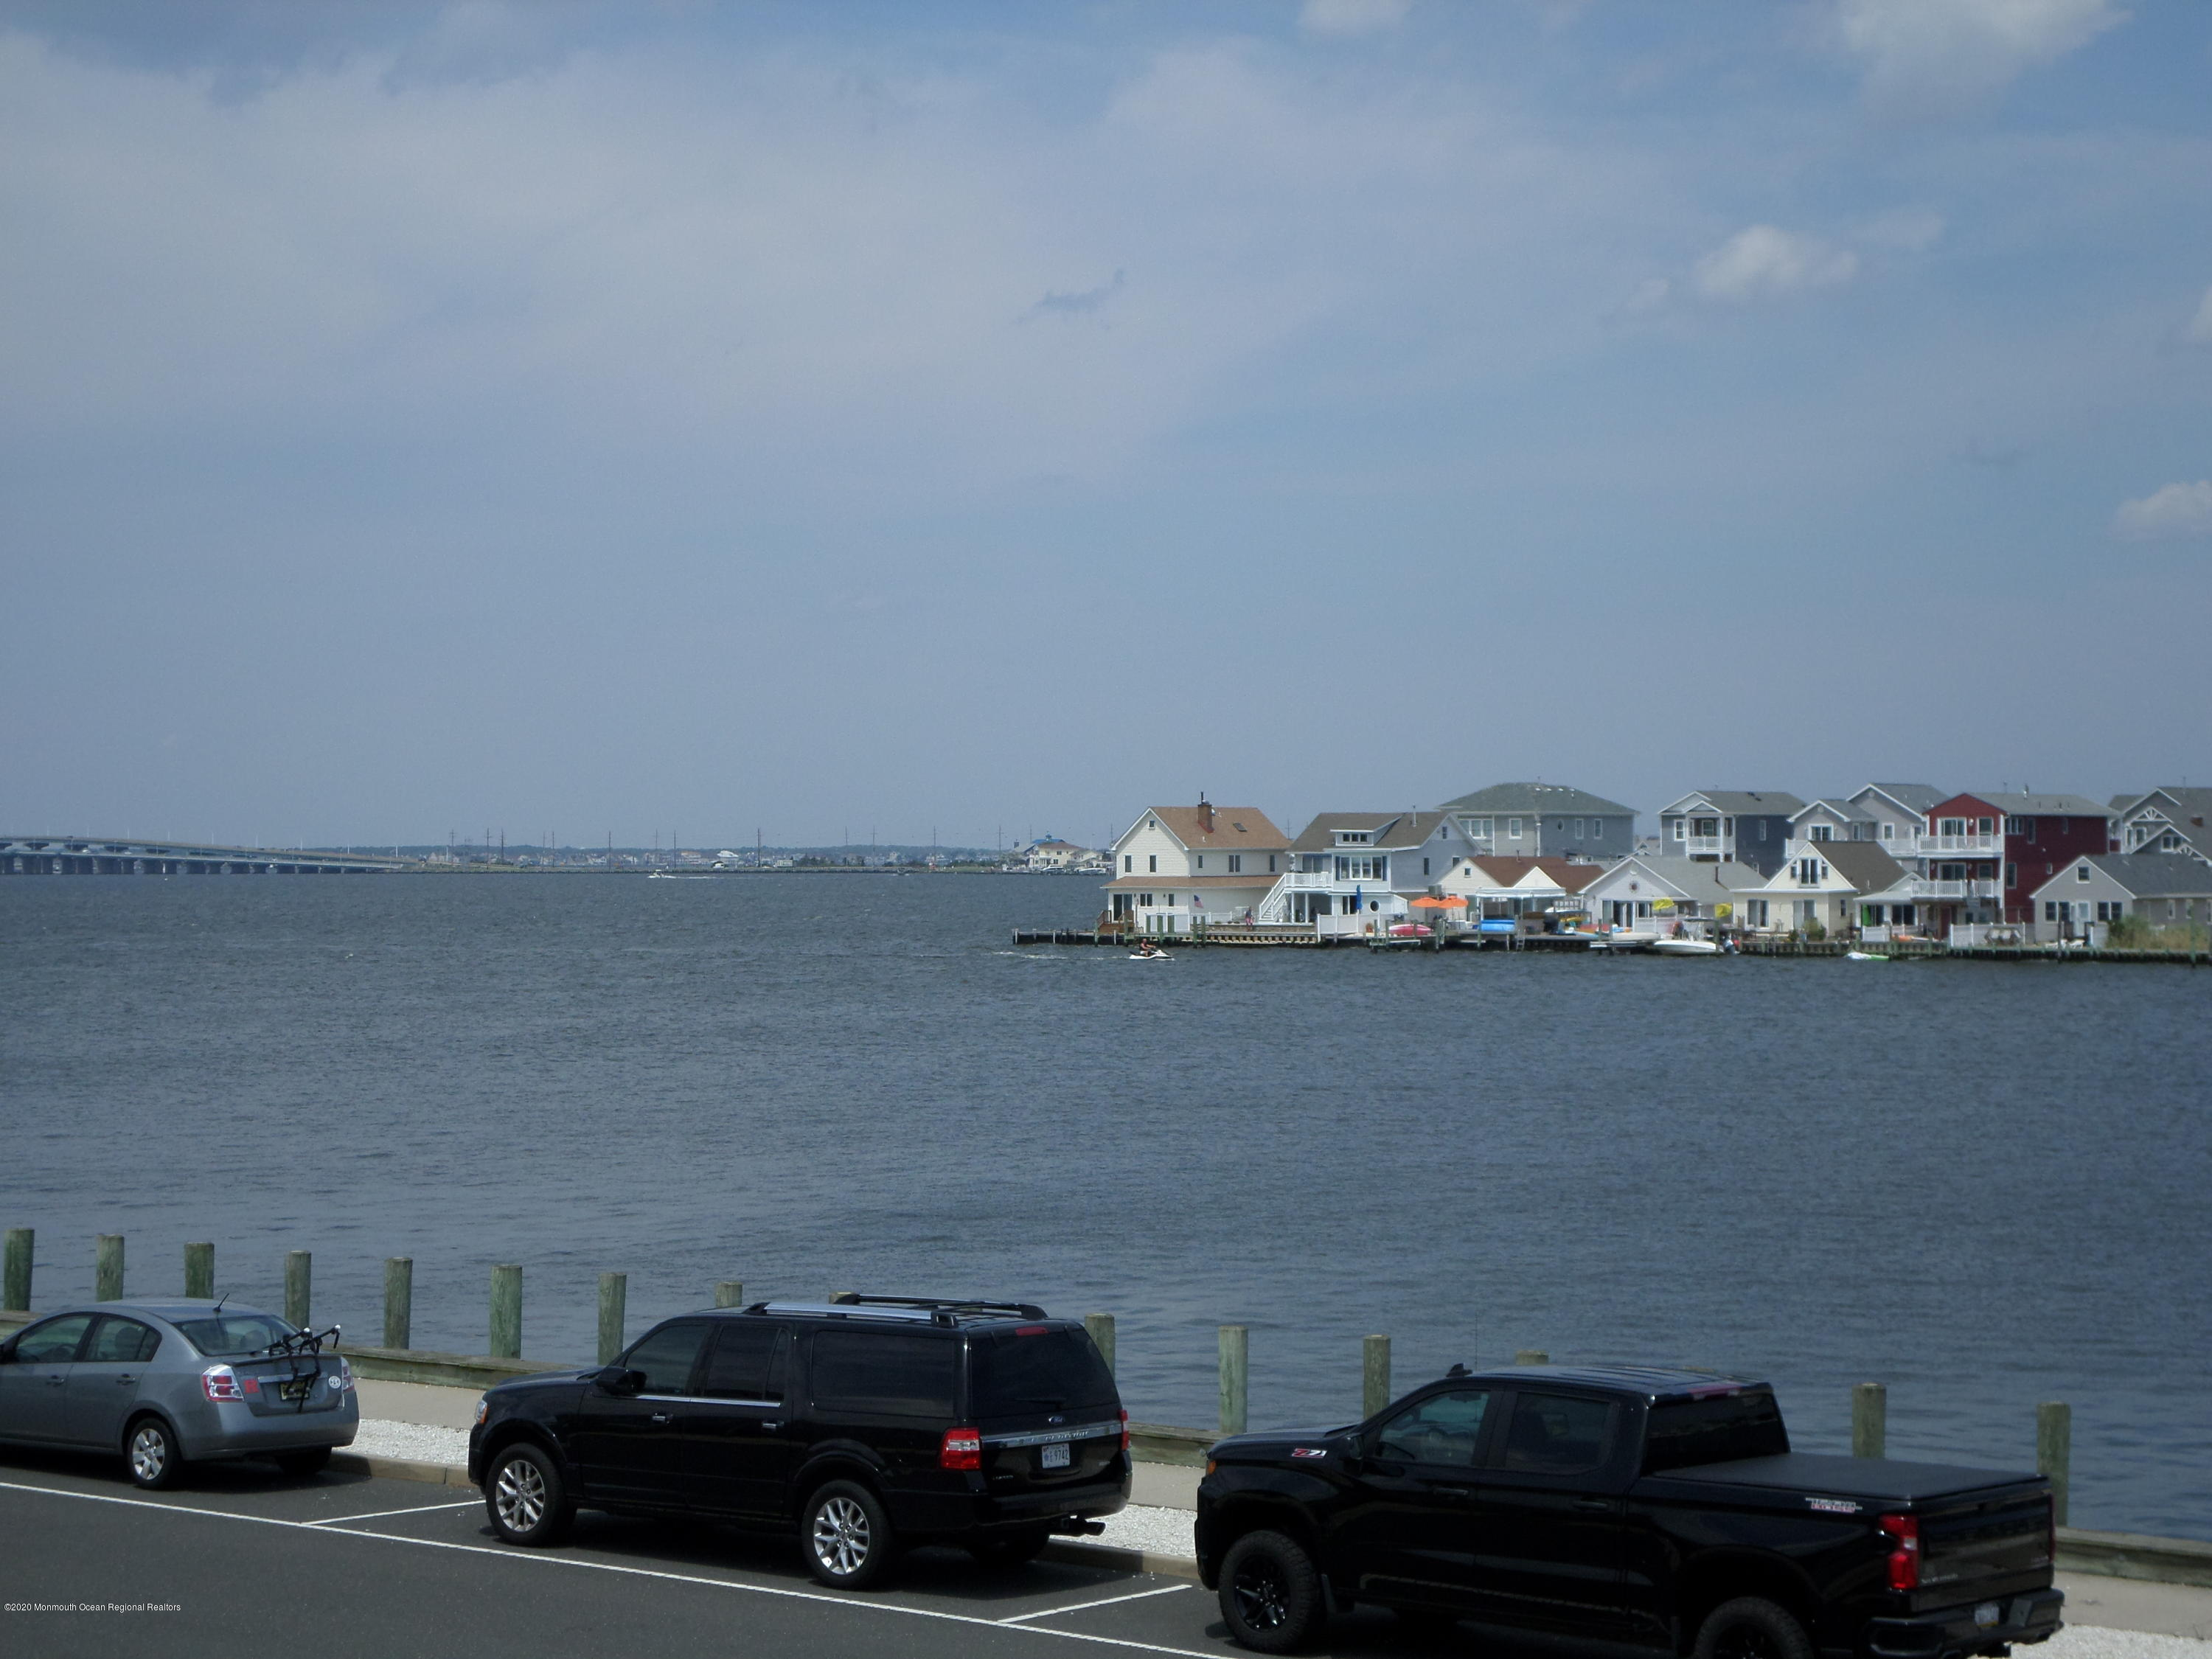 201 K Street A Luxury Home For Sale In Seaside Park New Jersey 22026738 Christie S International Real Estate